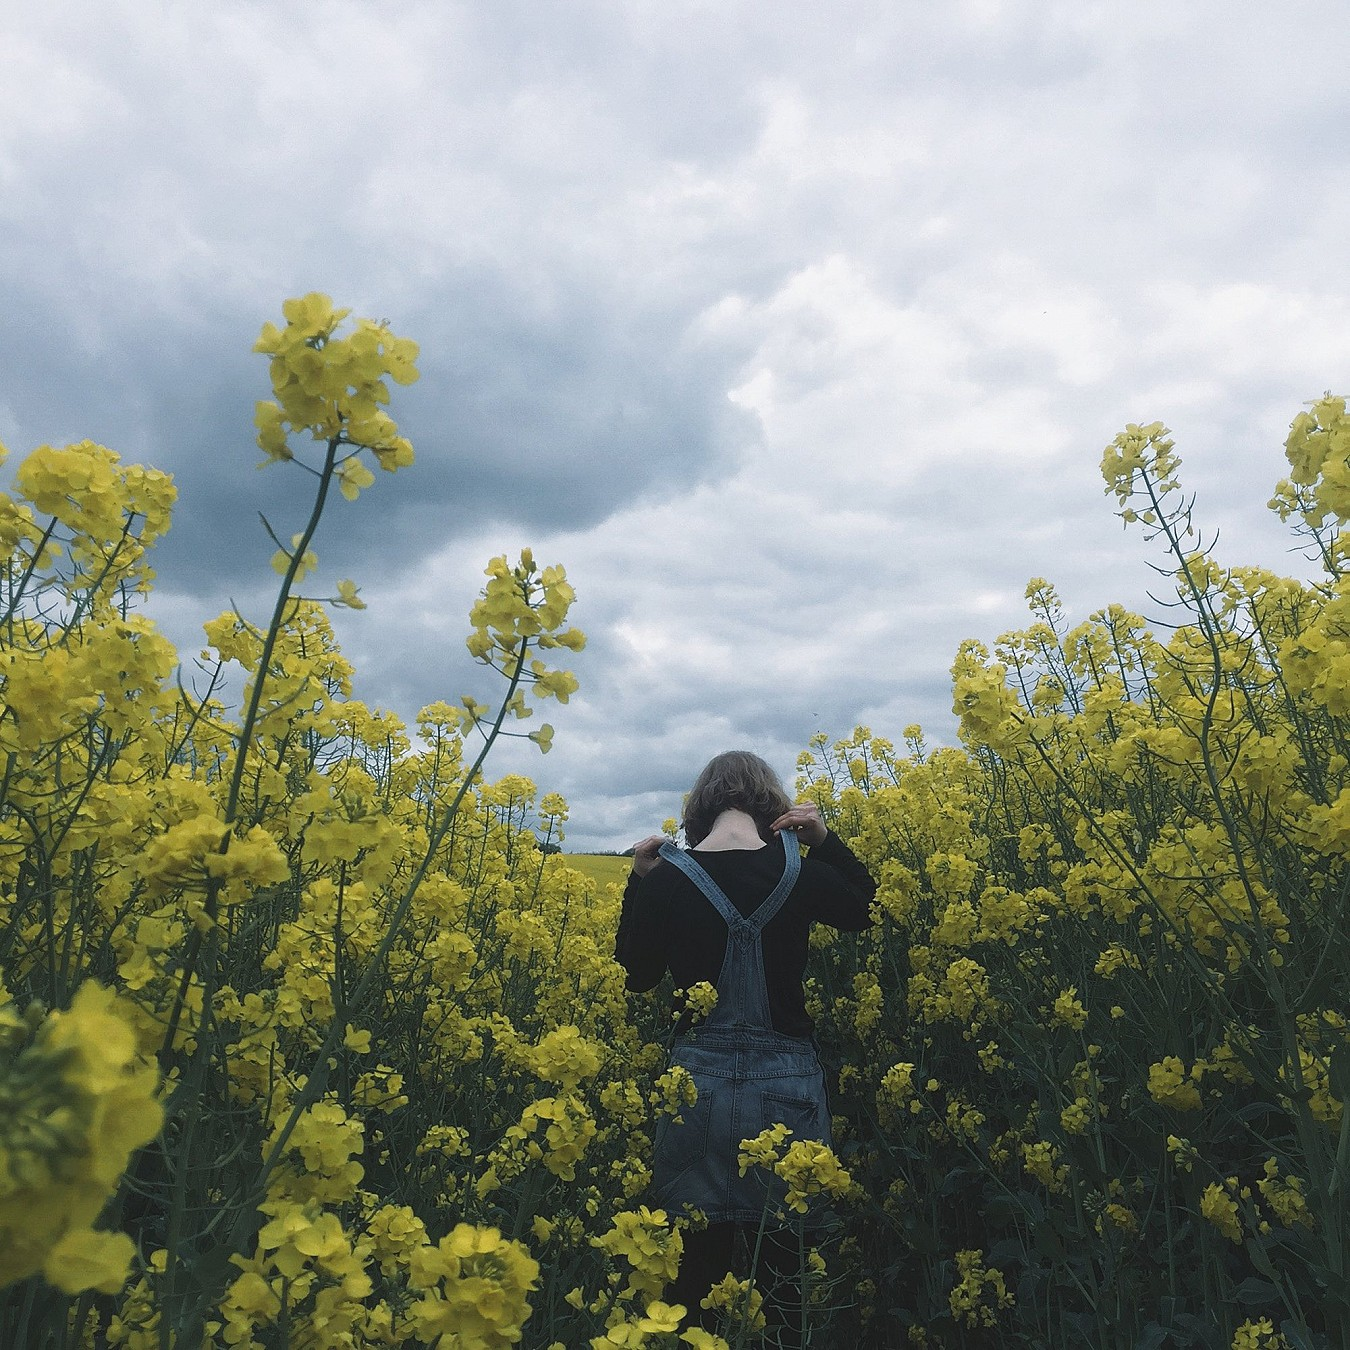 Kate Phoenix standing in a field of yellow rapeseed flowers.